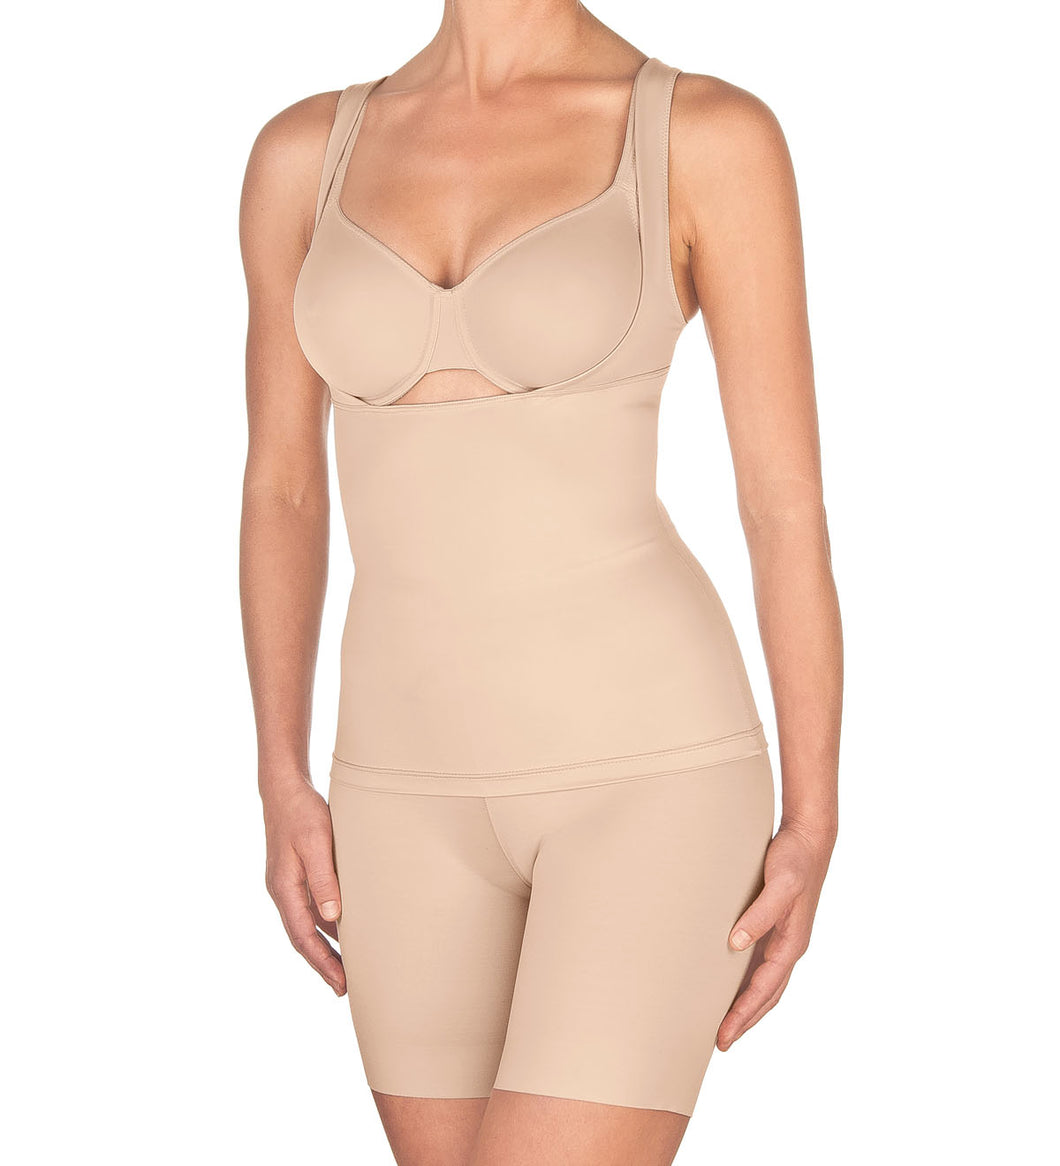 Soft Touch body shaper hemd 81822 034 Sand